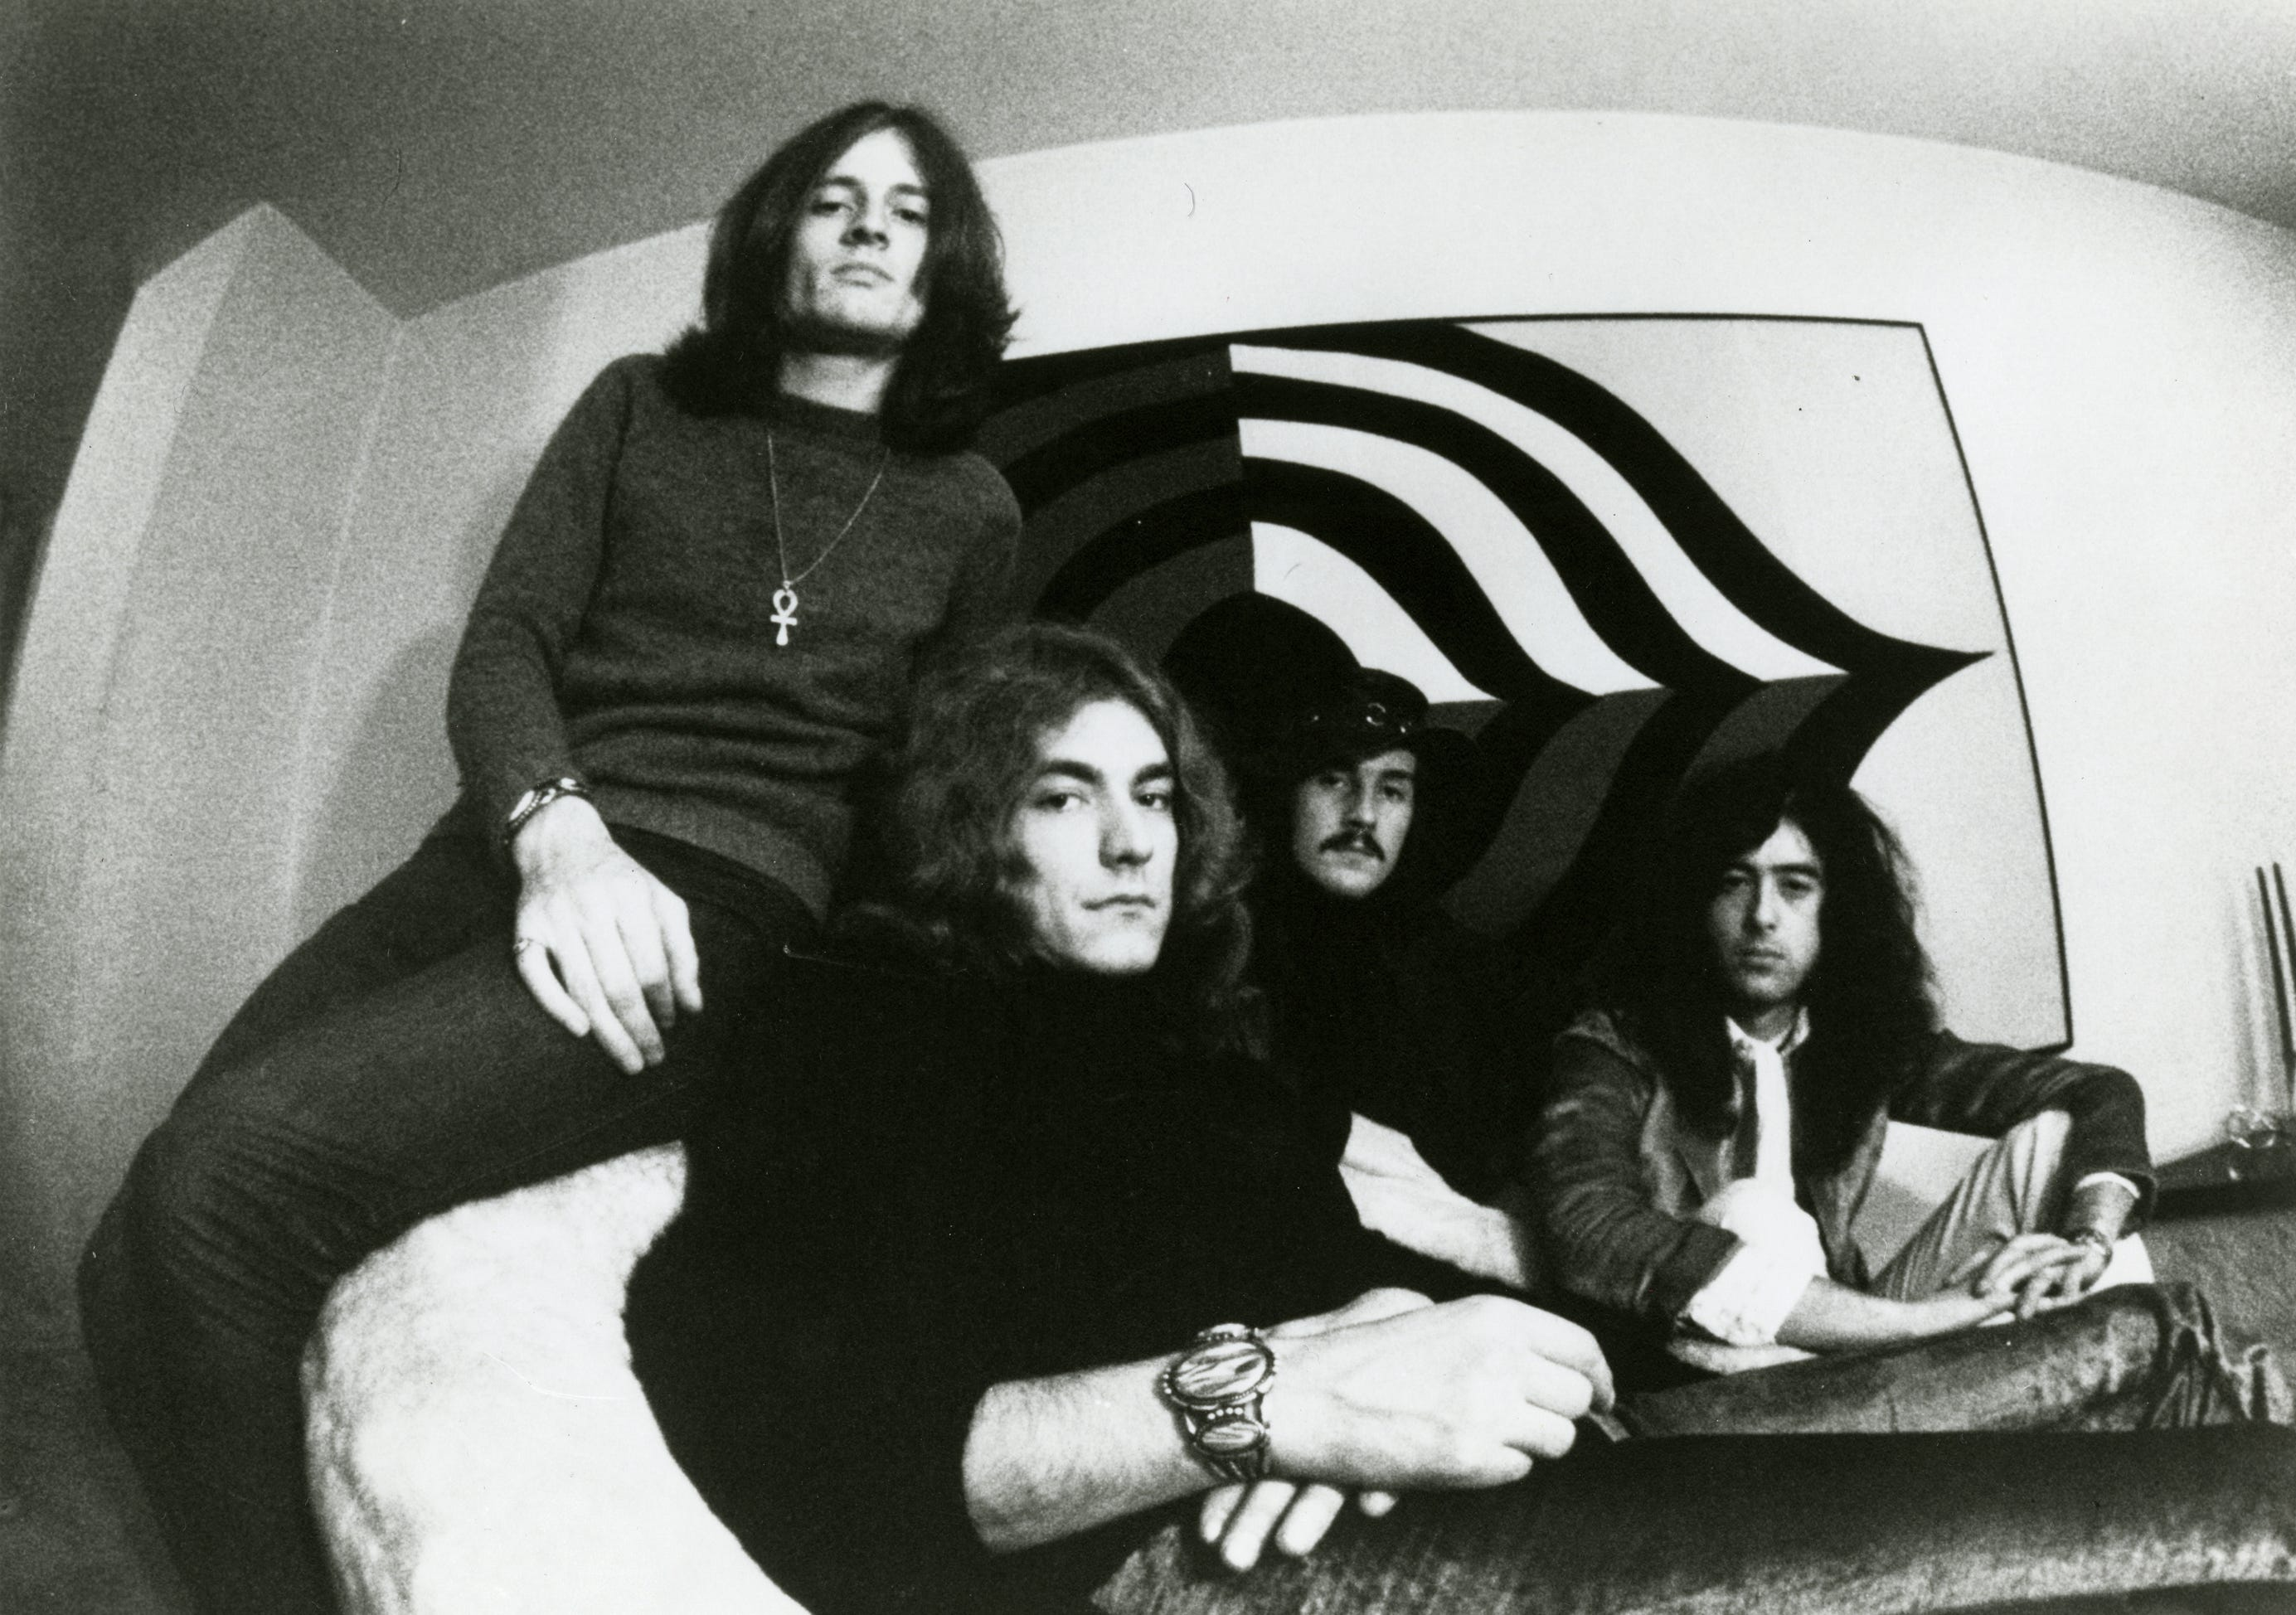 Fearful of being typecast, Led Zeppelin played Asbury Park instead of Woodstock